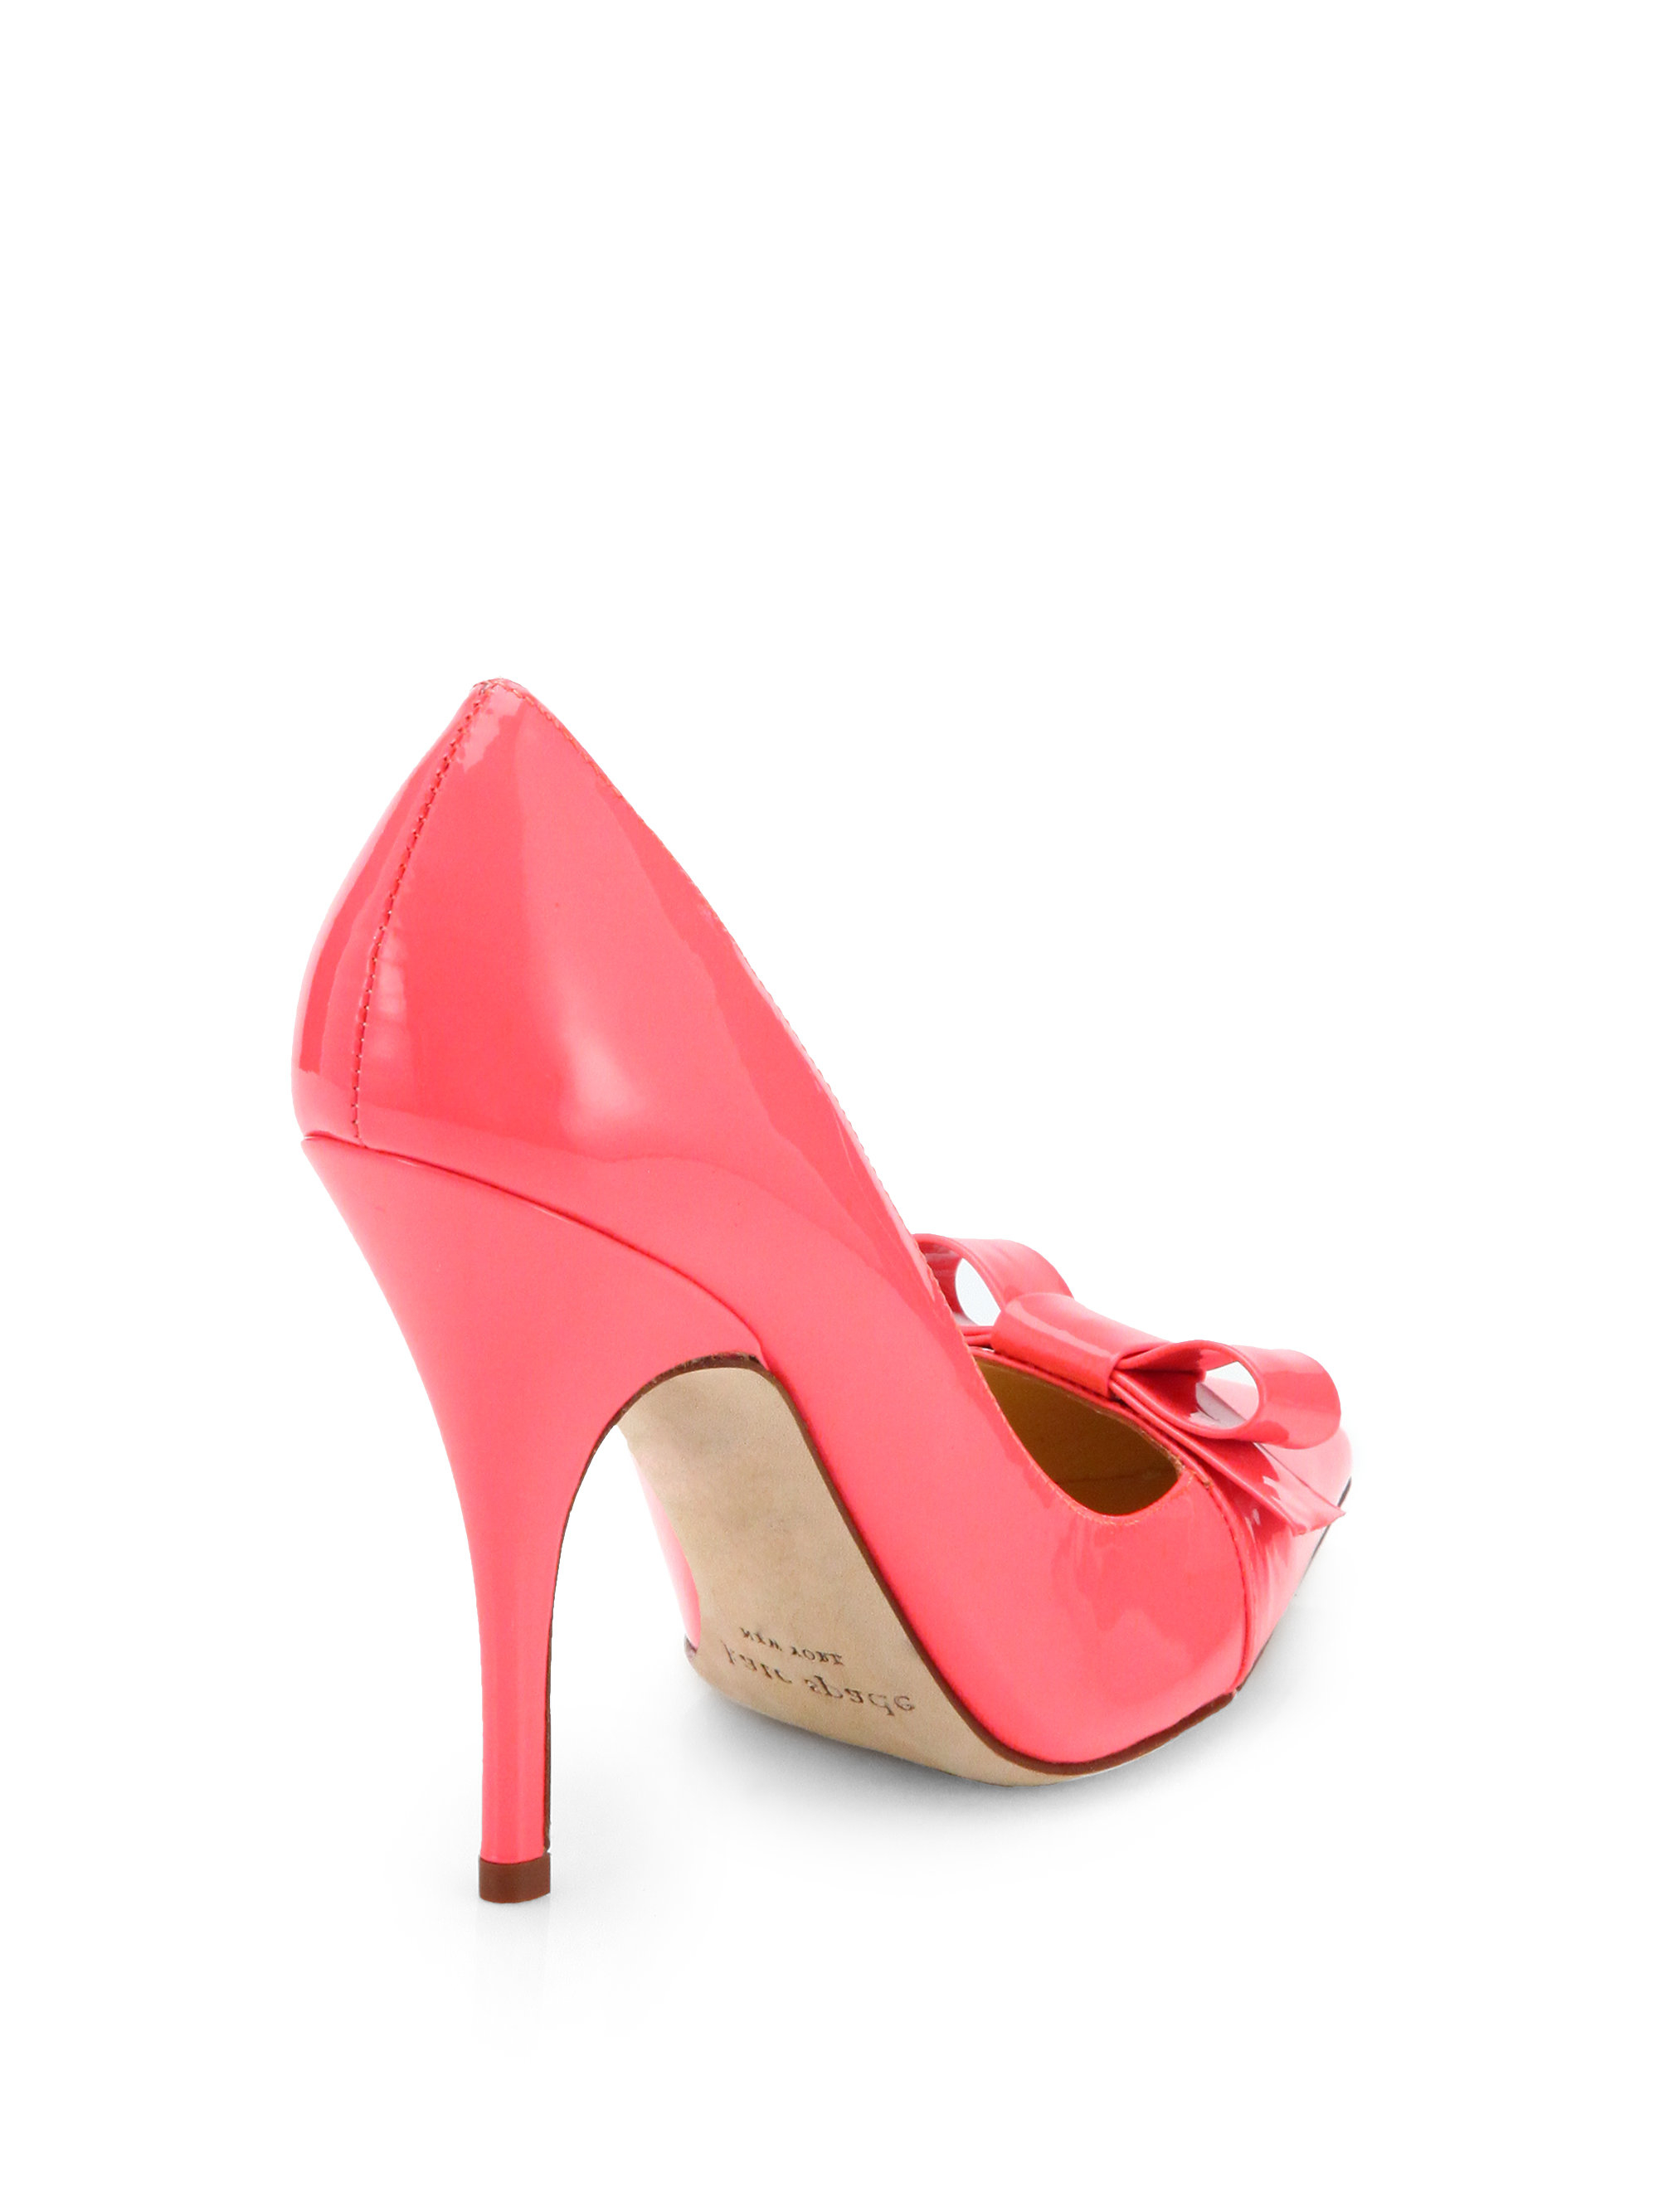 Kate Spade New York Lilia Bow Pumps In Pink Lyst